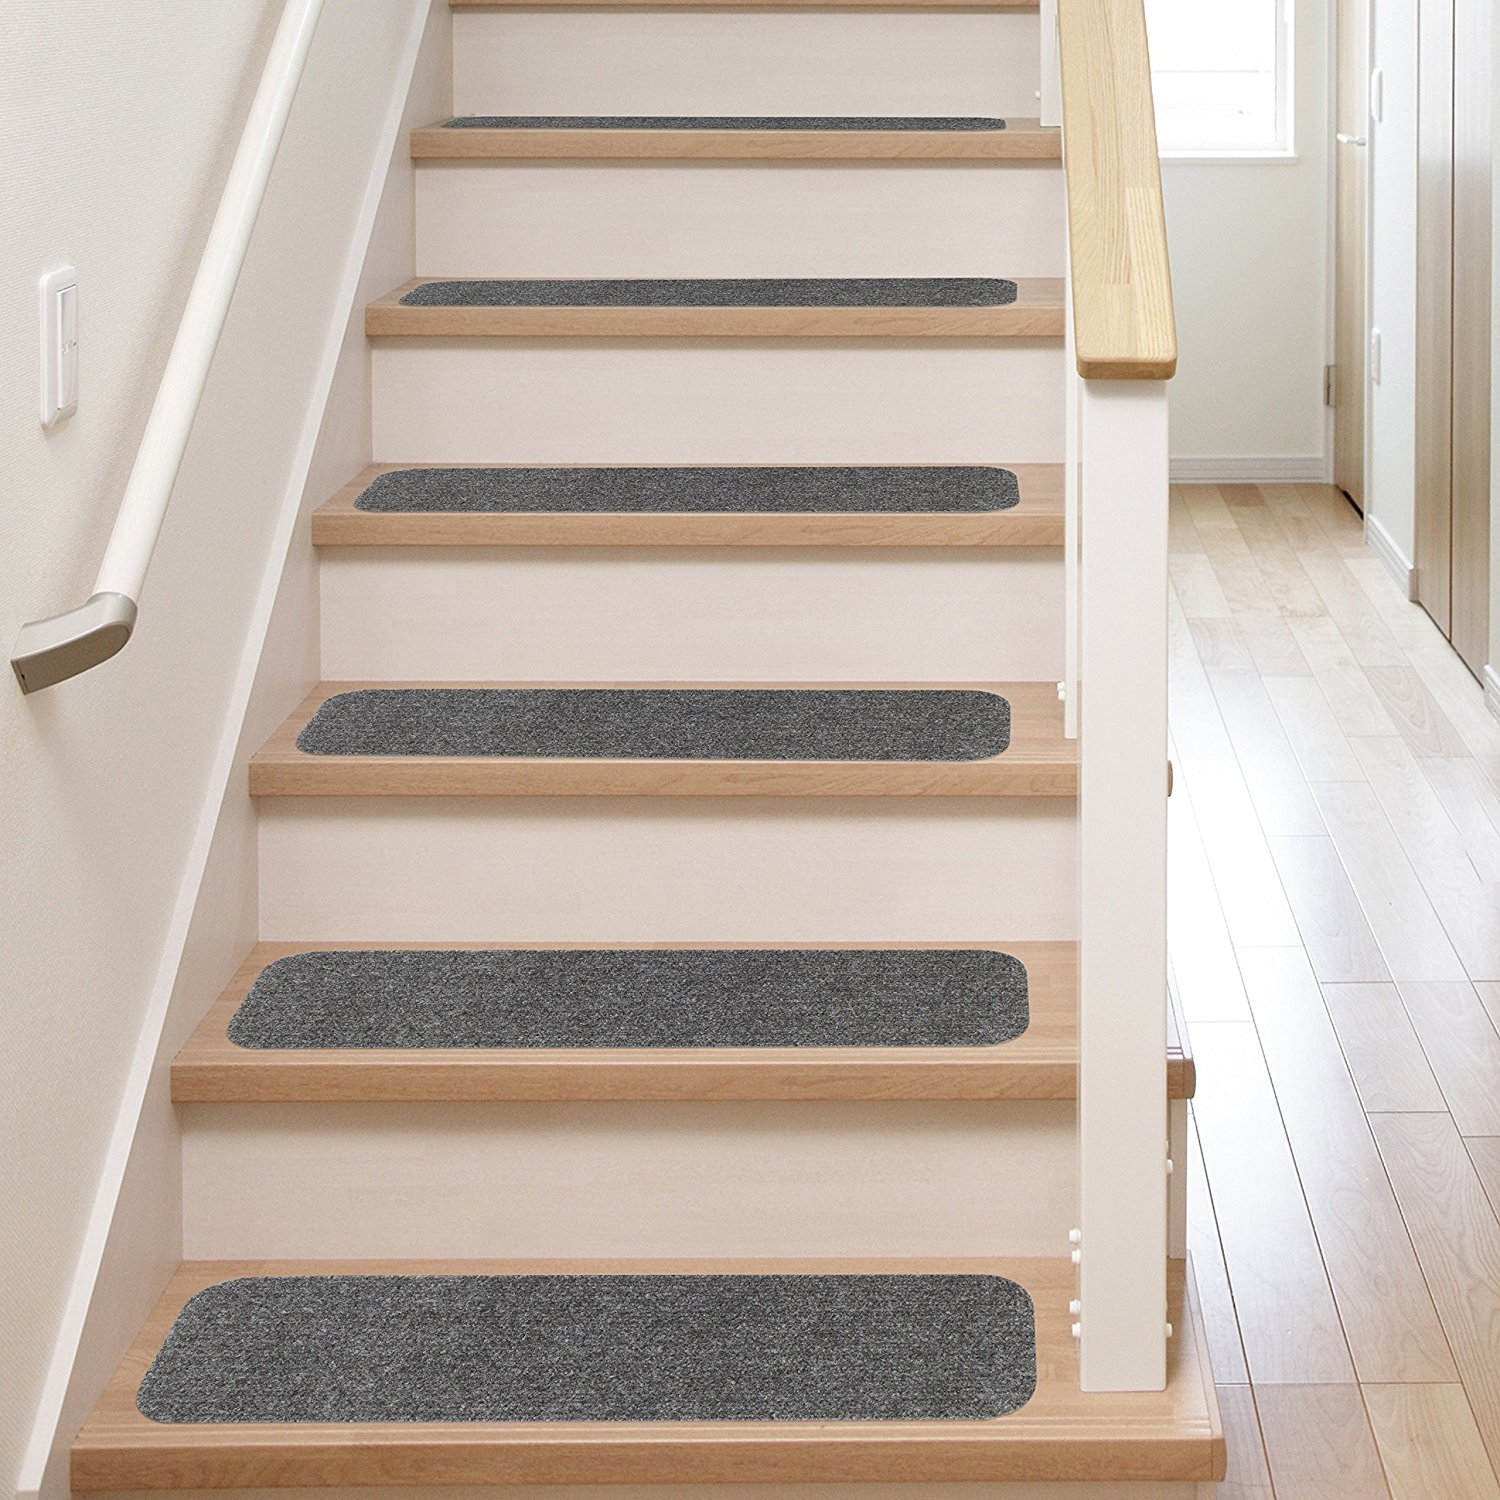 13 Stair Treads Non Slip Carpet Pads Easy Tape Installation For Carpet Strips For Stairs (#1 of 20)